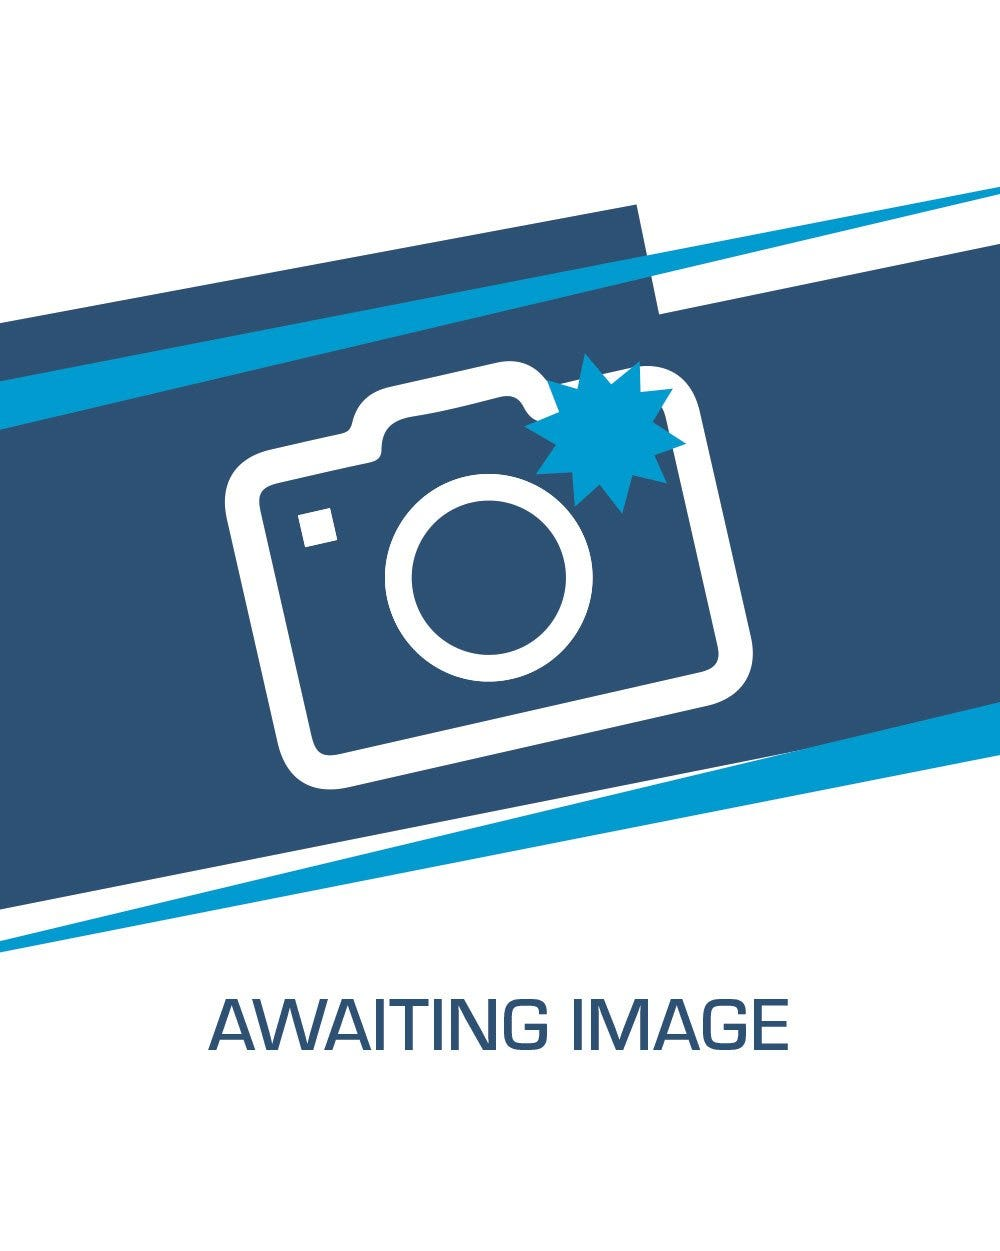 Clutch and Brake Pedal Rubber